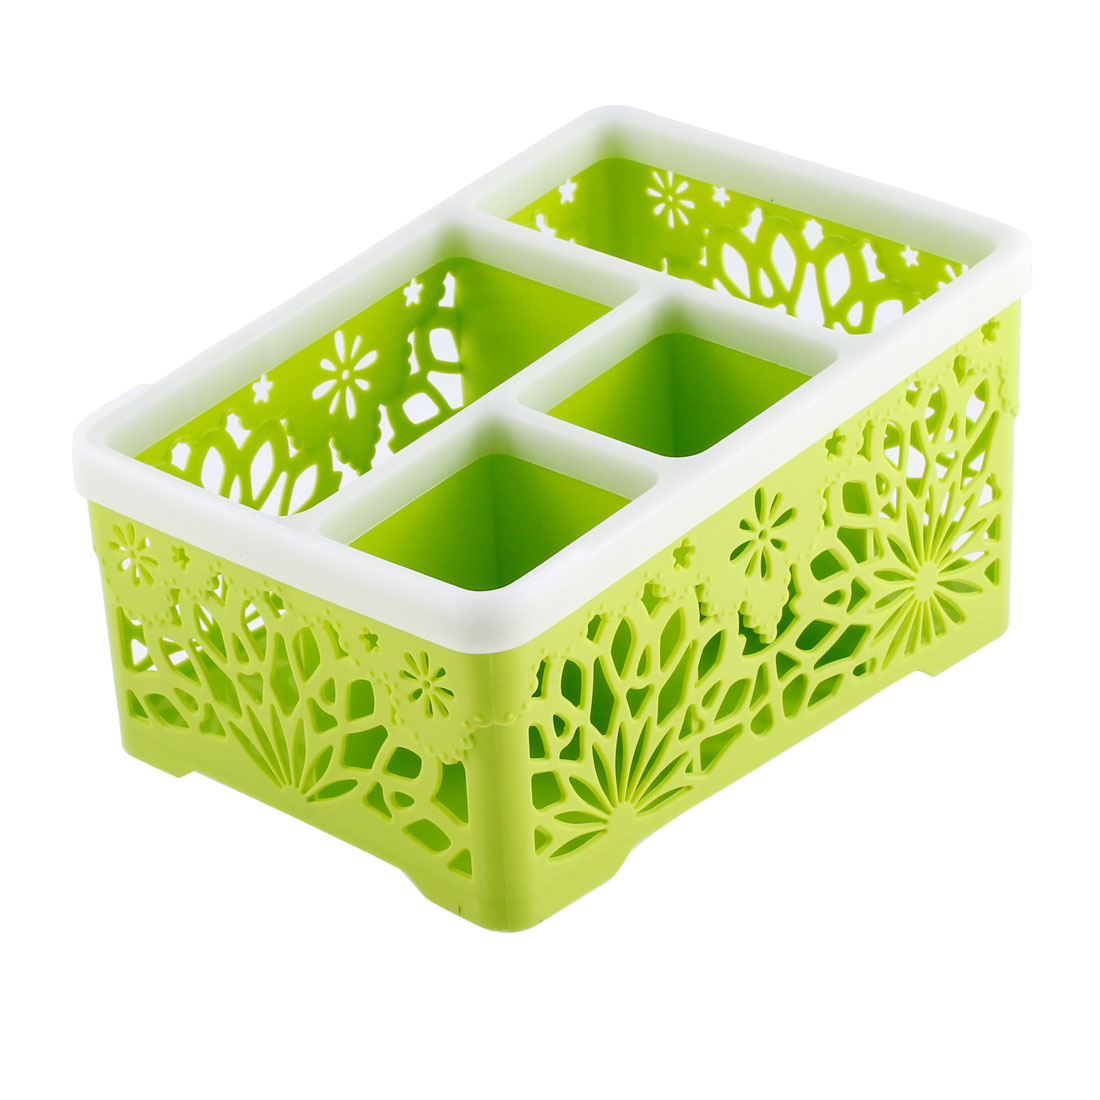 Hollow Out Flower Pattern 4 Compartments Remote Control Sundries Storage Organizer Holder Box